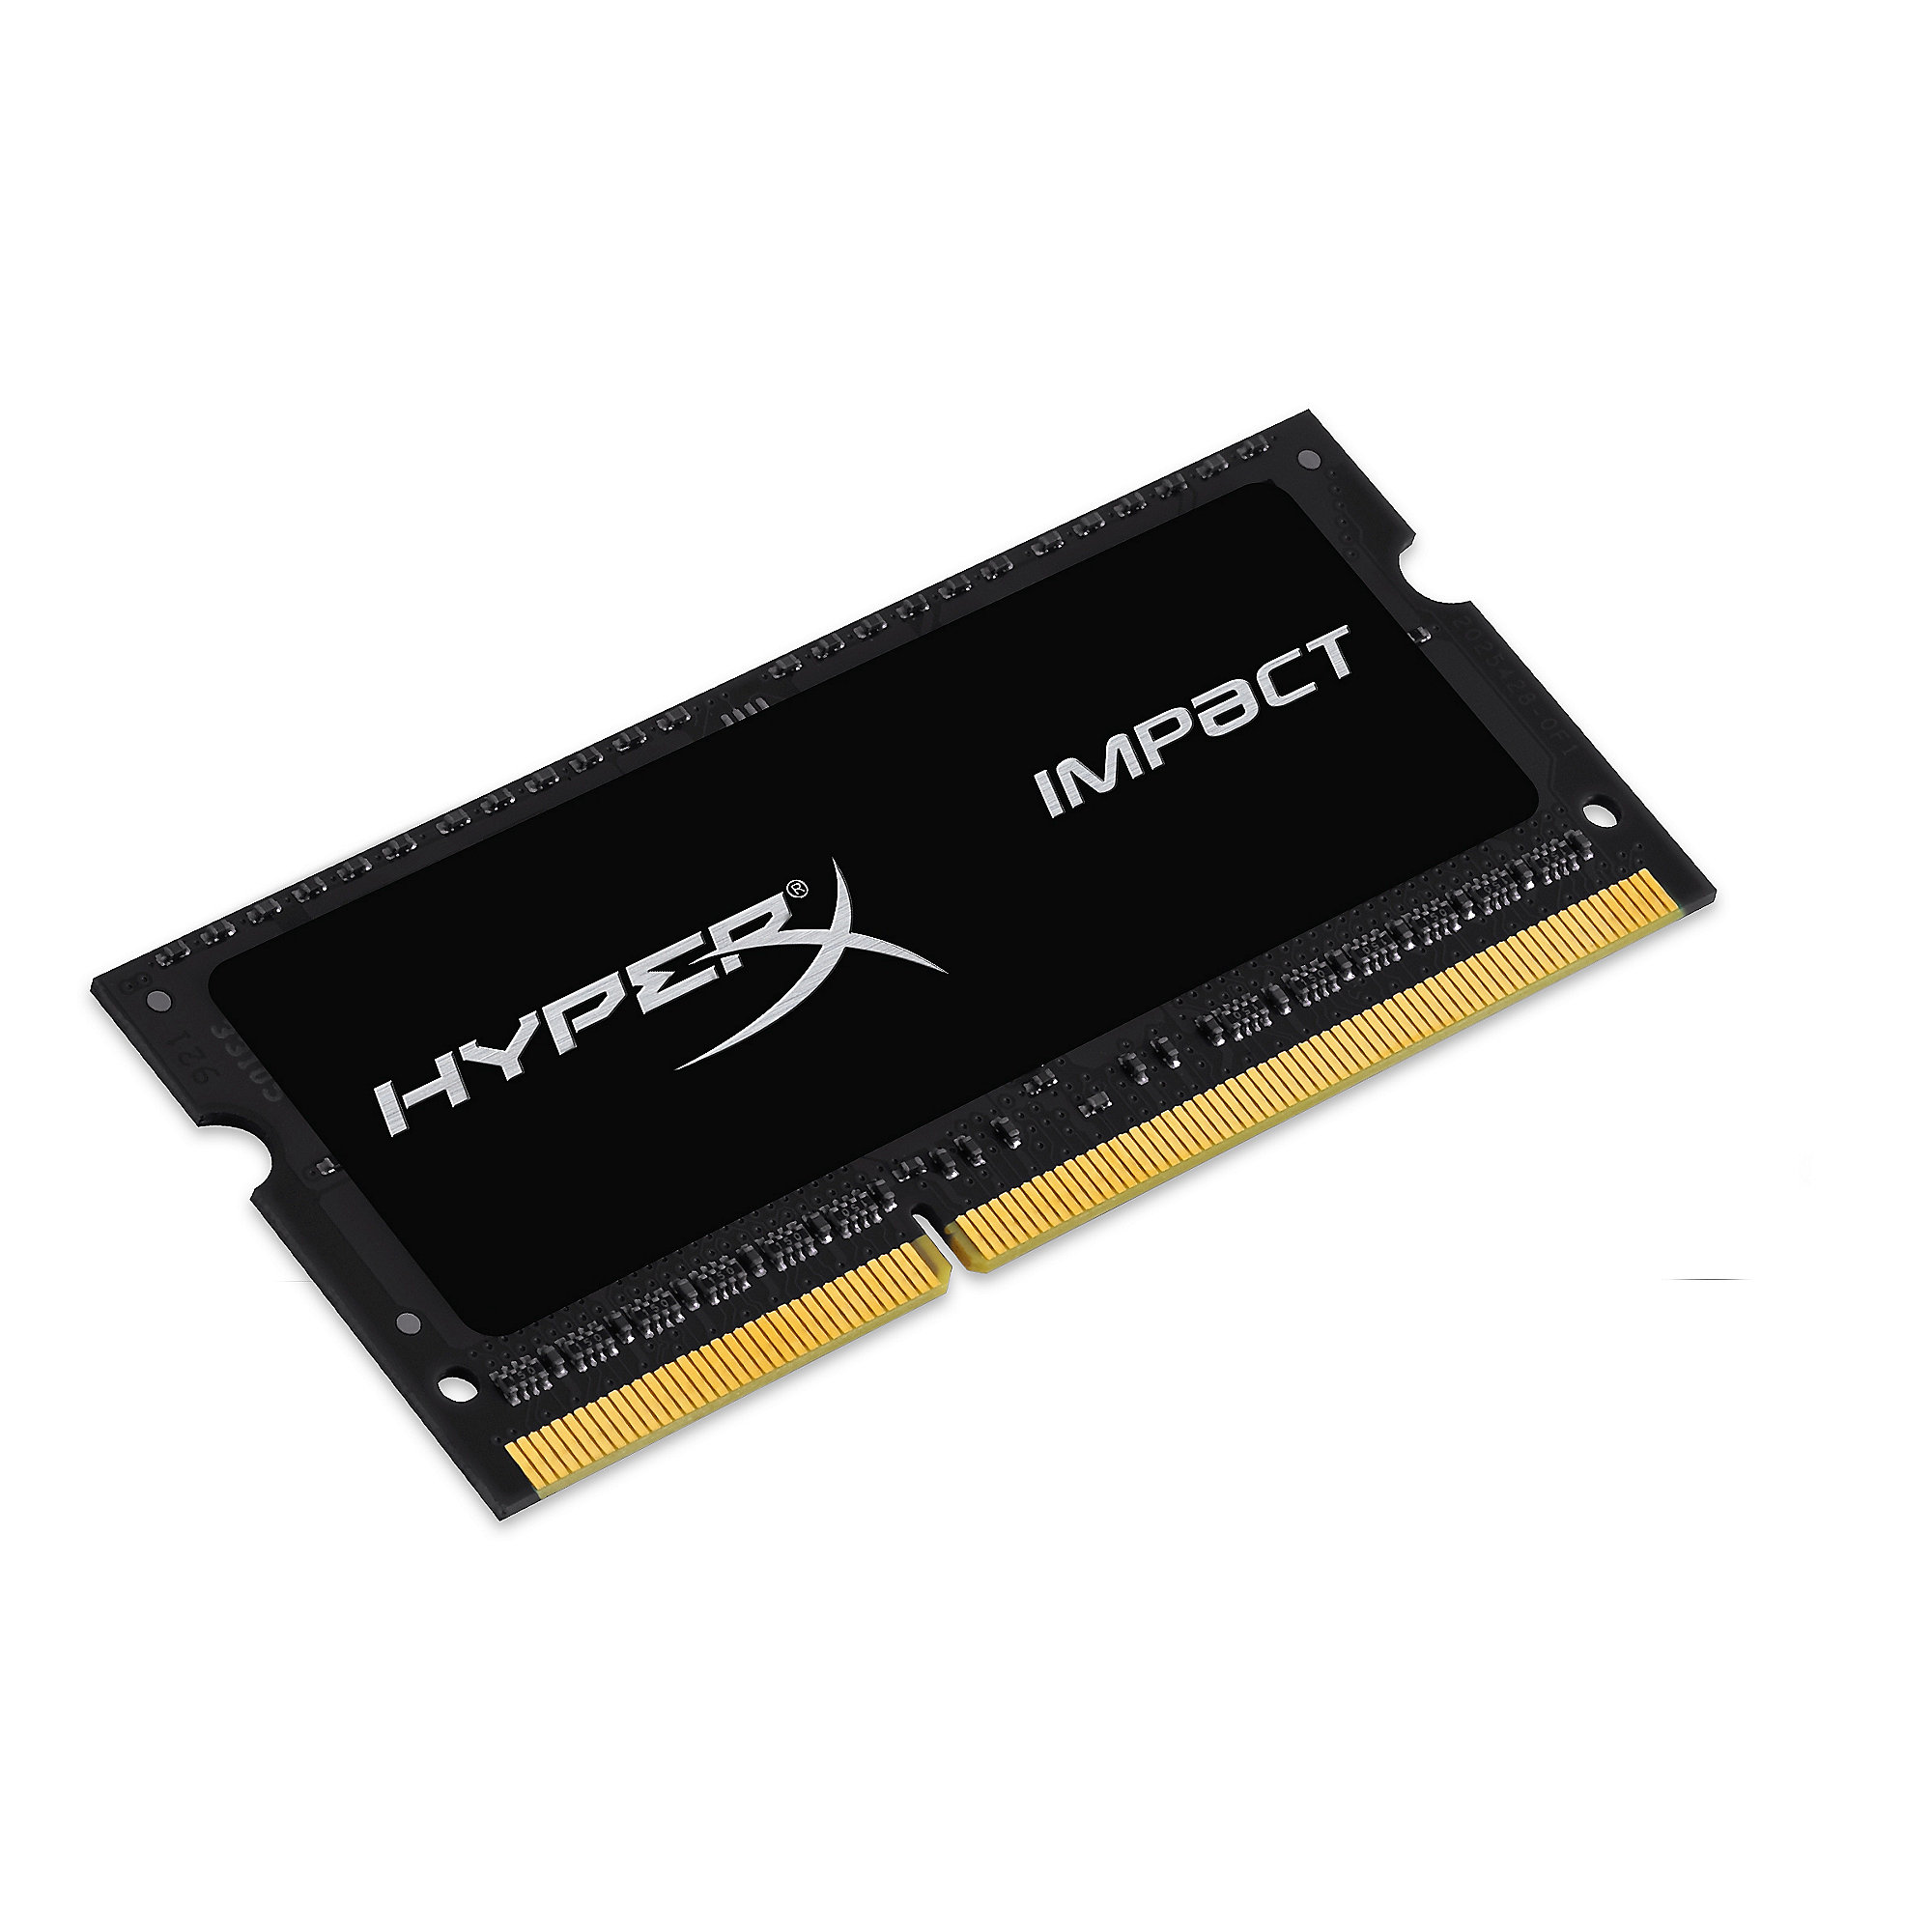 8GB (2x4GB) Kingston HyperX Impact DDR3-1600 CL9 SO-DIMM RAM